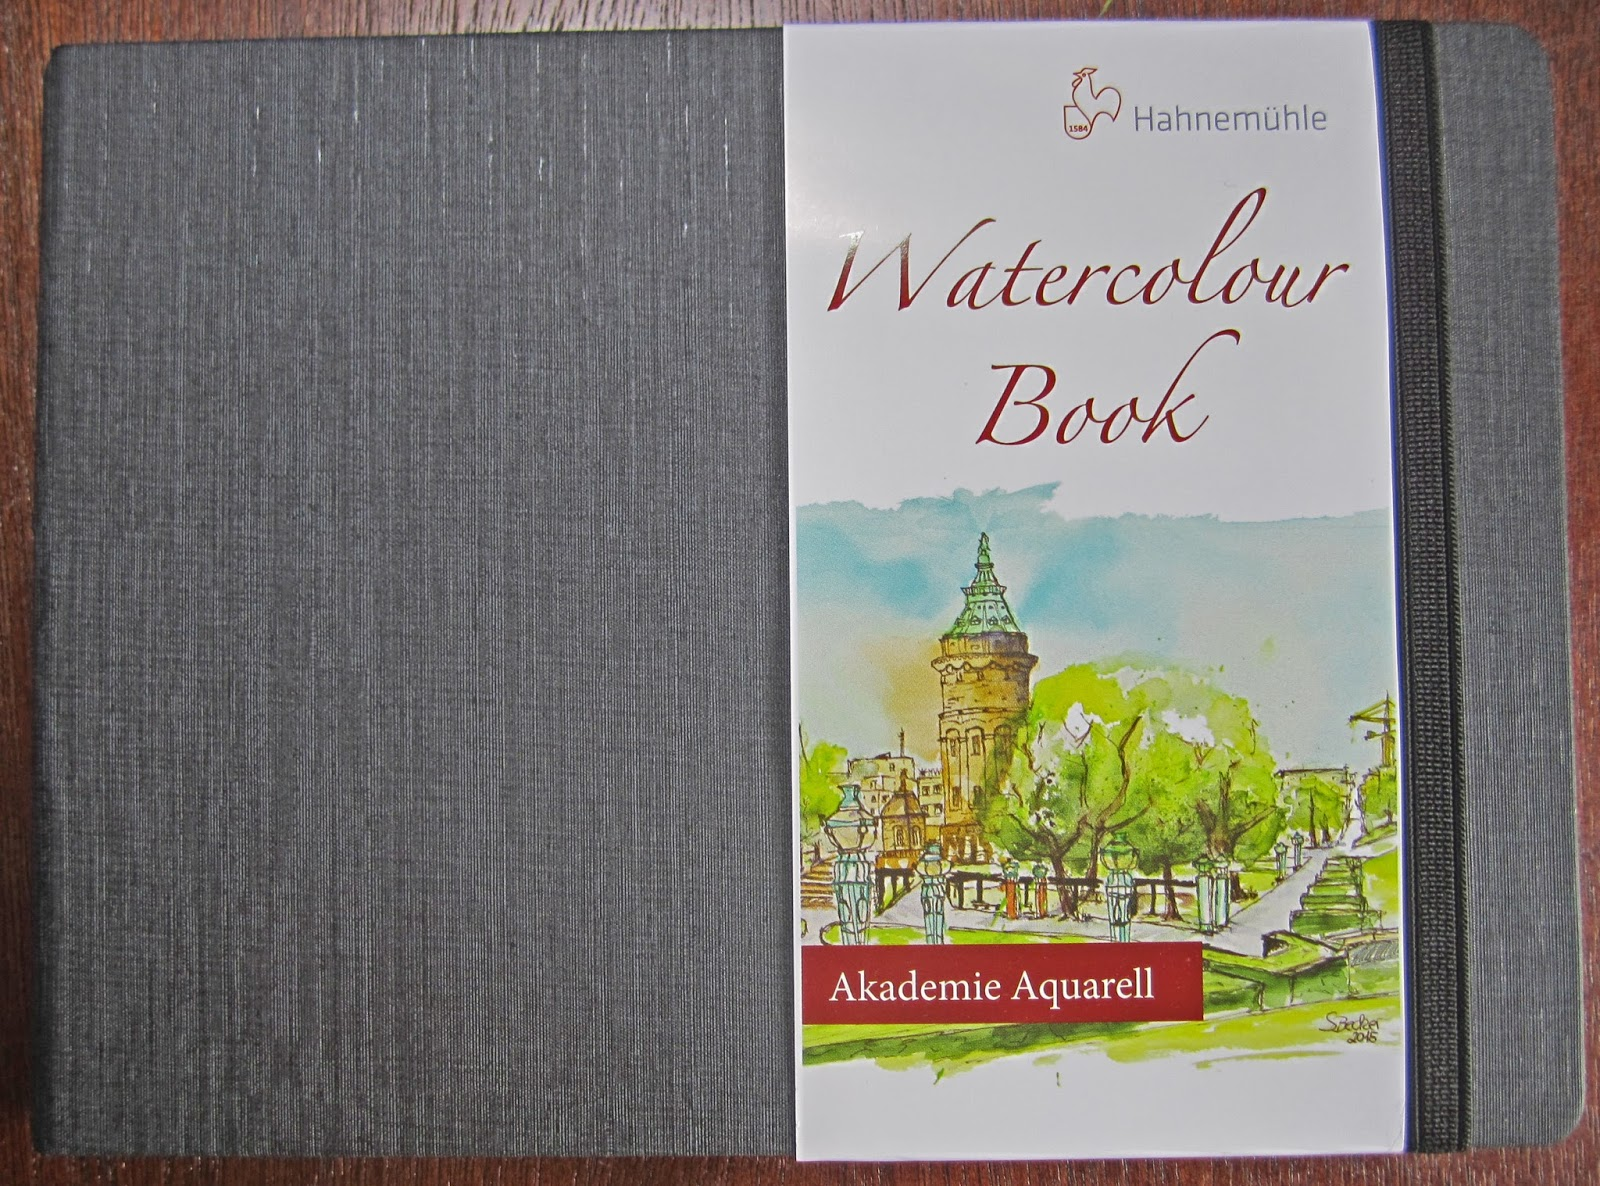 Book Cover Paper Weight : Review hahnemühle a watercolorbook book